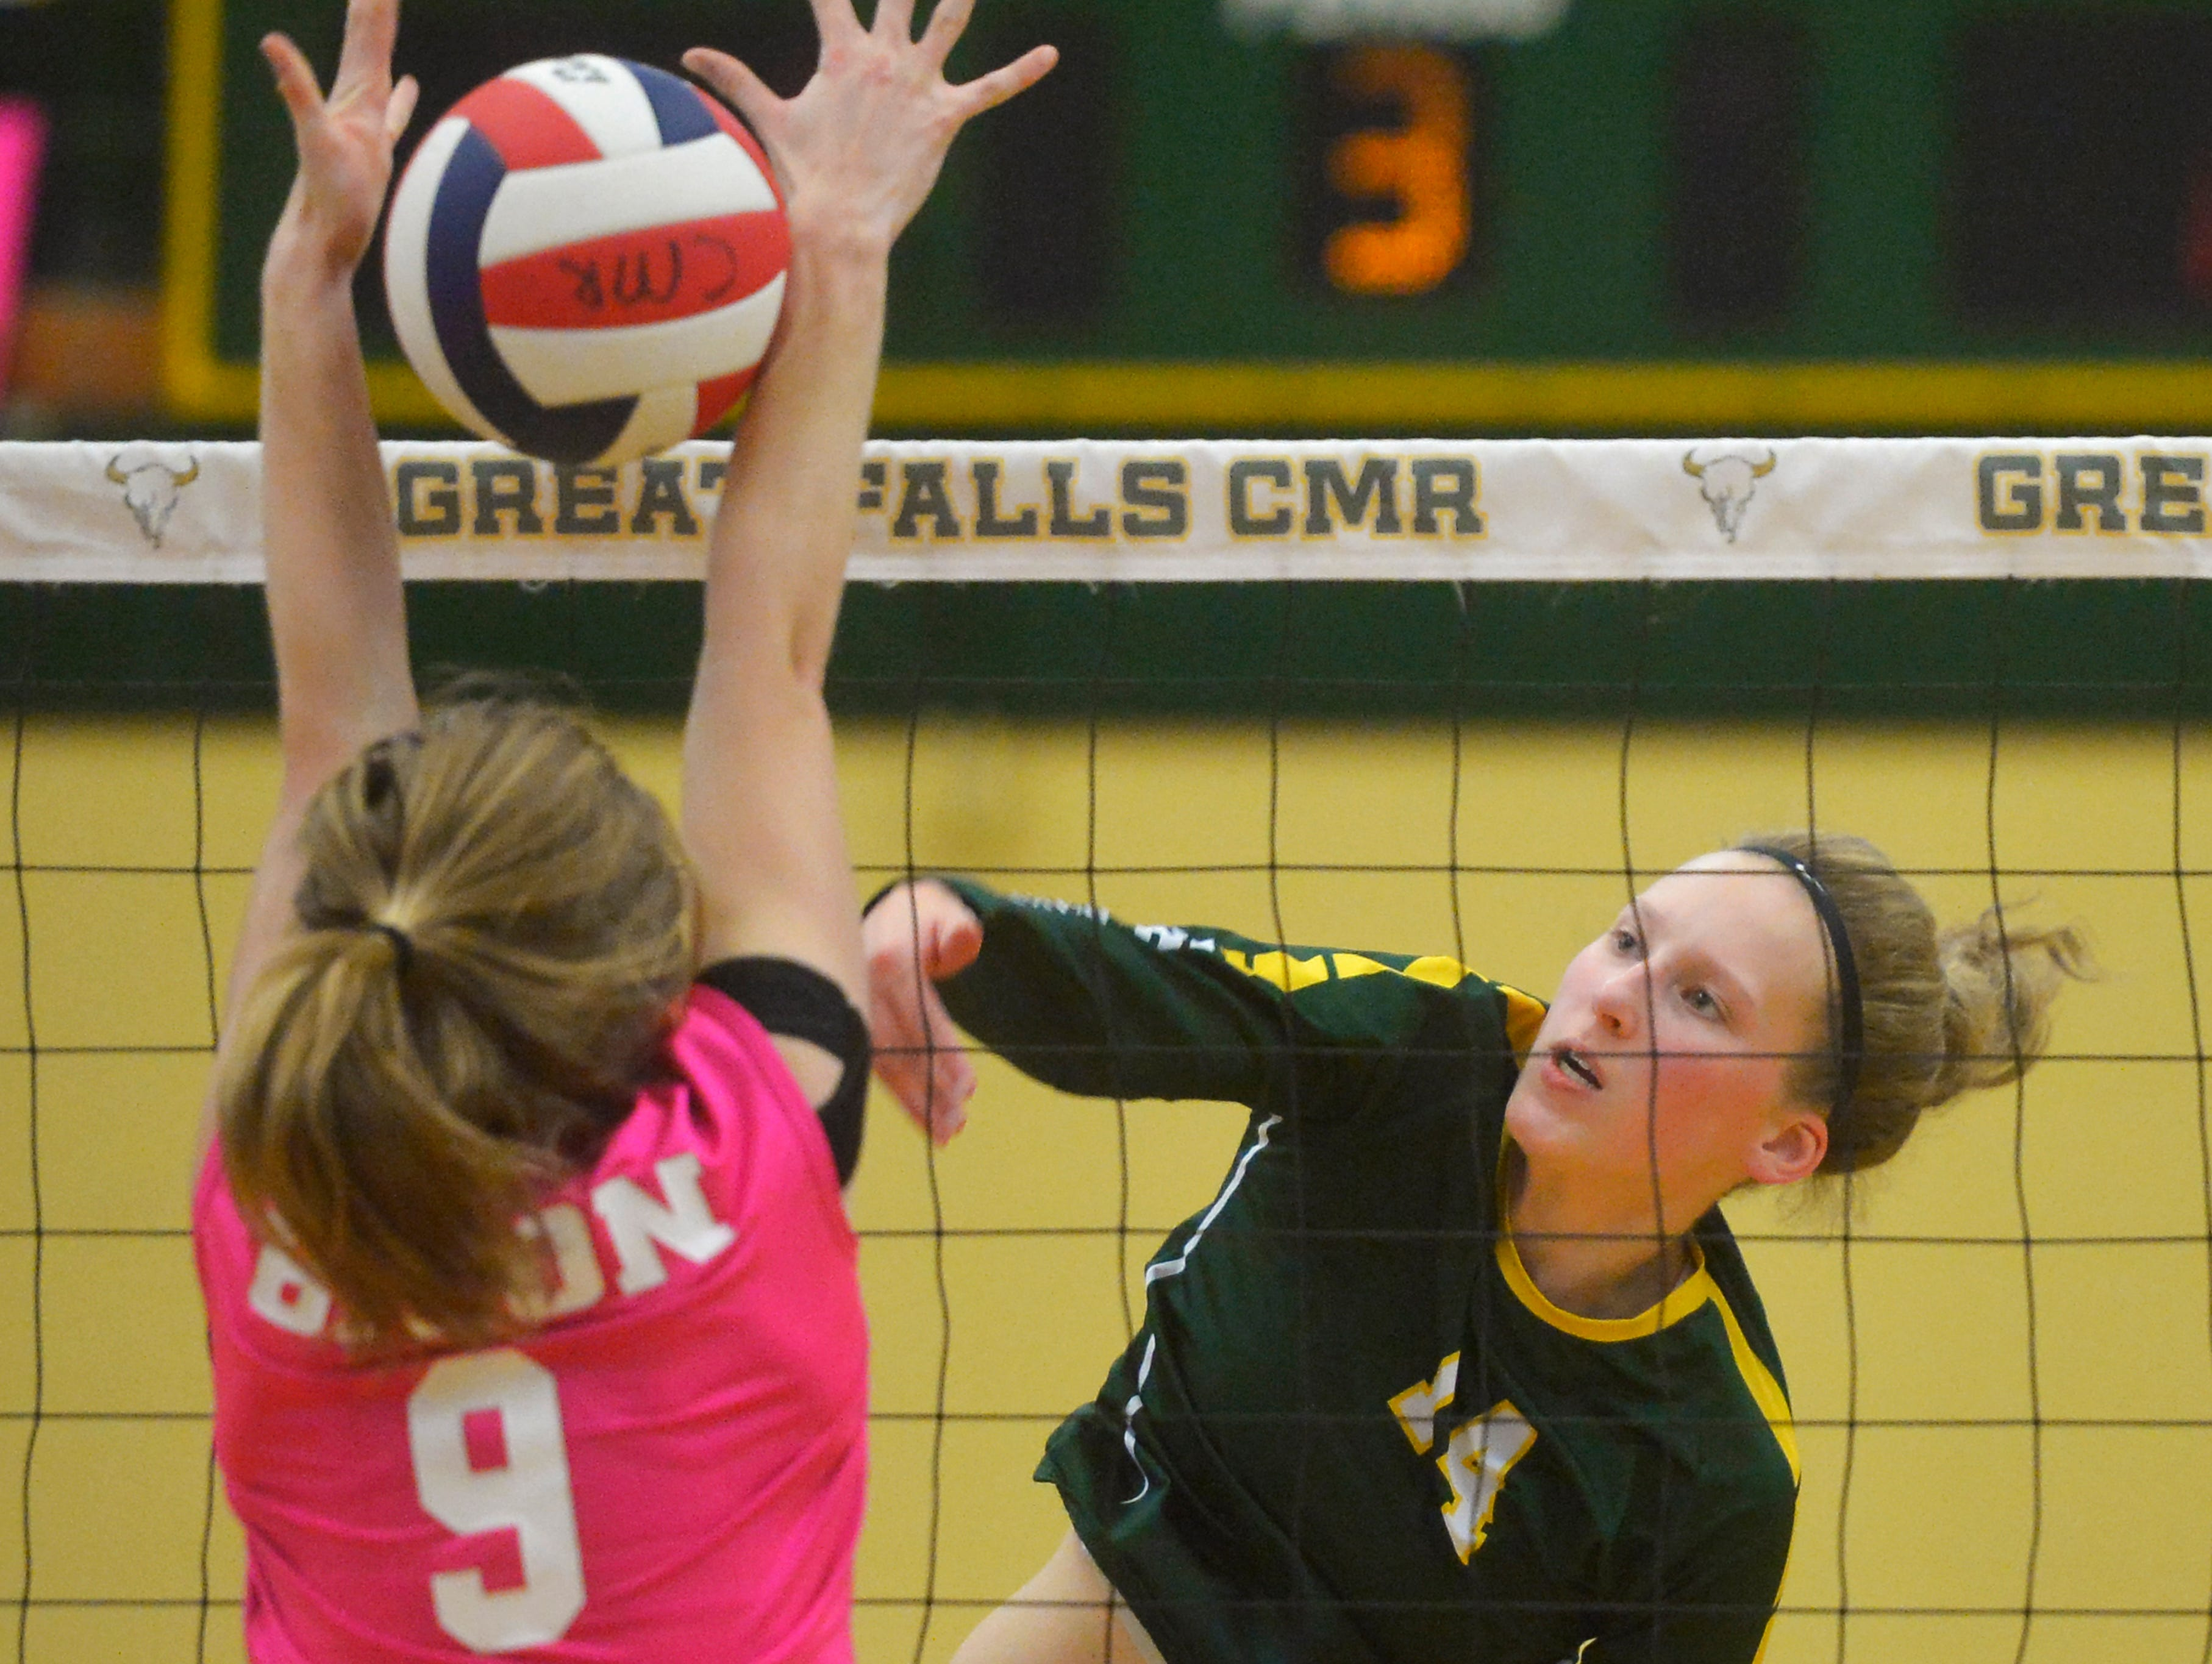 CMR's Allie Olsen spikes at the net during the crosstown volleyball match in the CMR Fieldhouse, Tuesday.